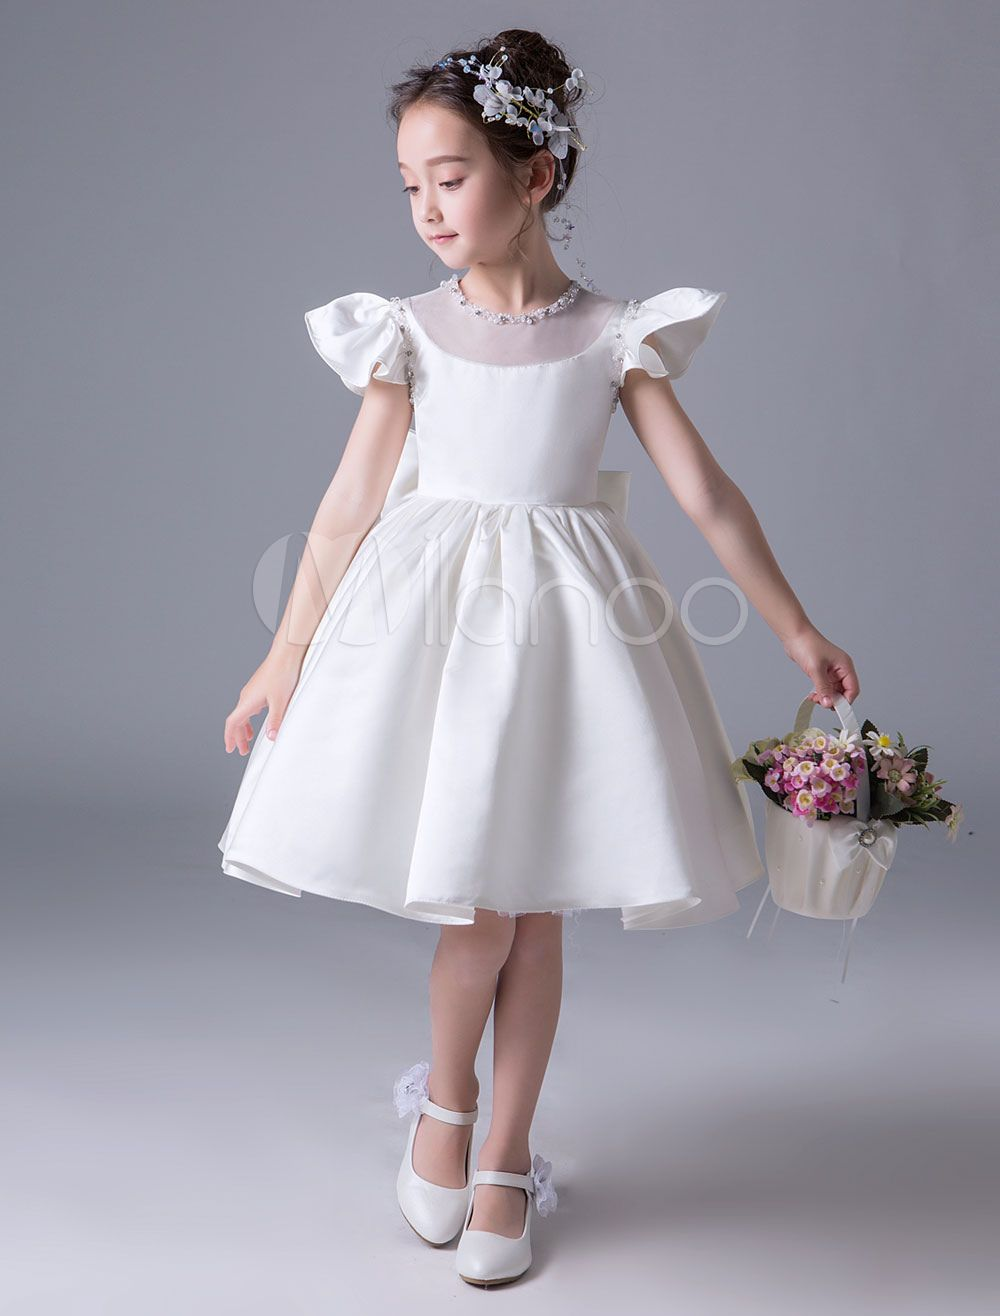 099a7f4d9 Flower Girl Dresses Satin Short Sleeve Bow Ivory Princess Dress Knee Length  Kids Party Dresses